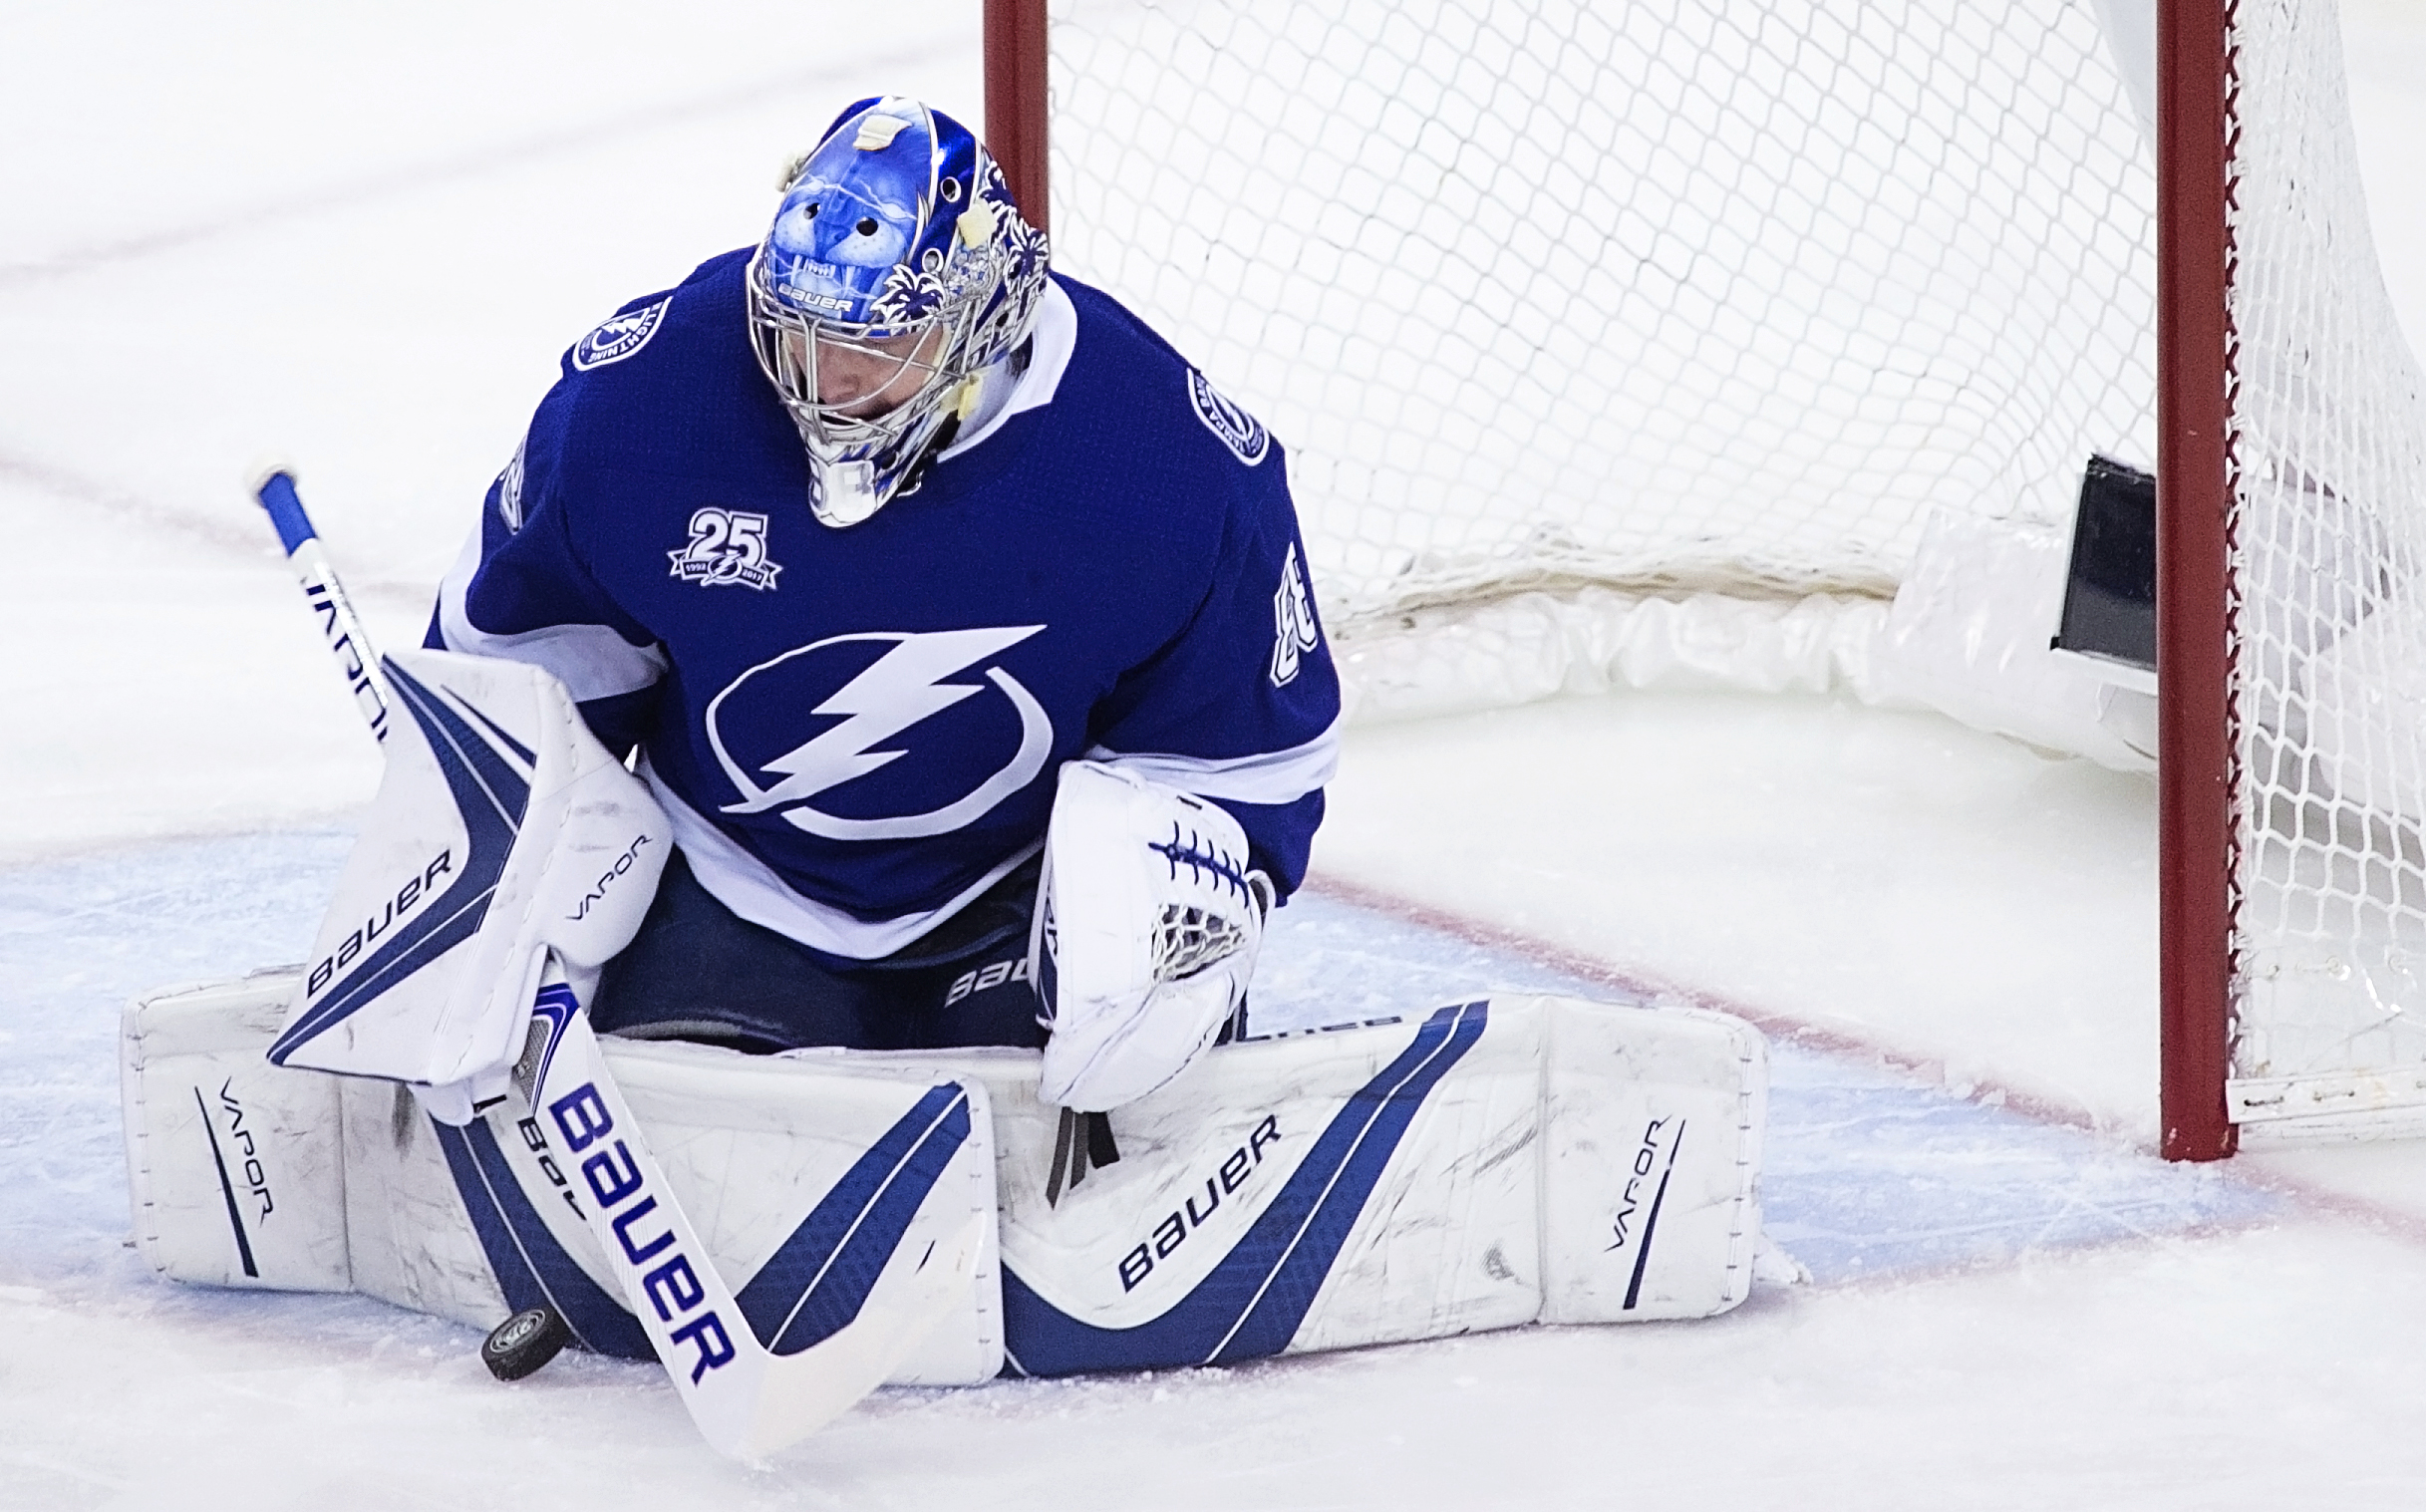 Vasilevskiy withstood a strong third period by the Devils./CARMEN MANDATO